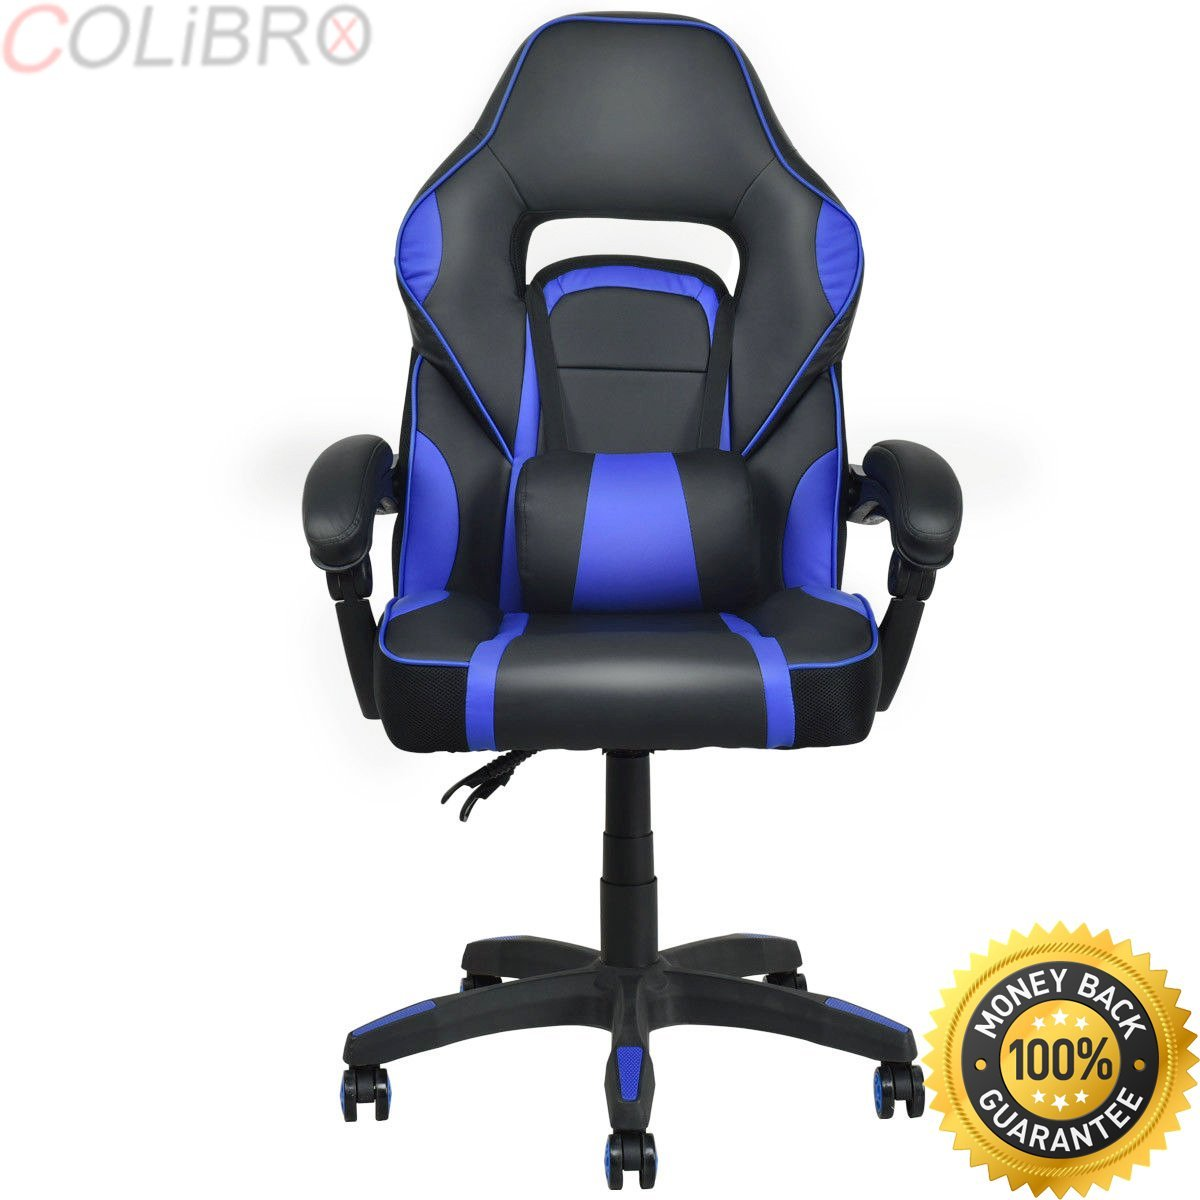 Cheap Boom Gaming Chair Find Boom Gaming Chair Deals On Line At